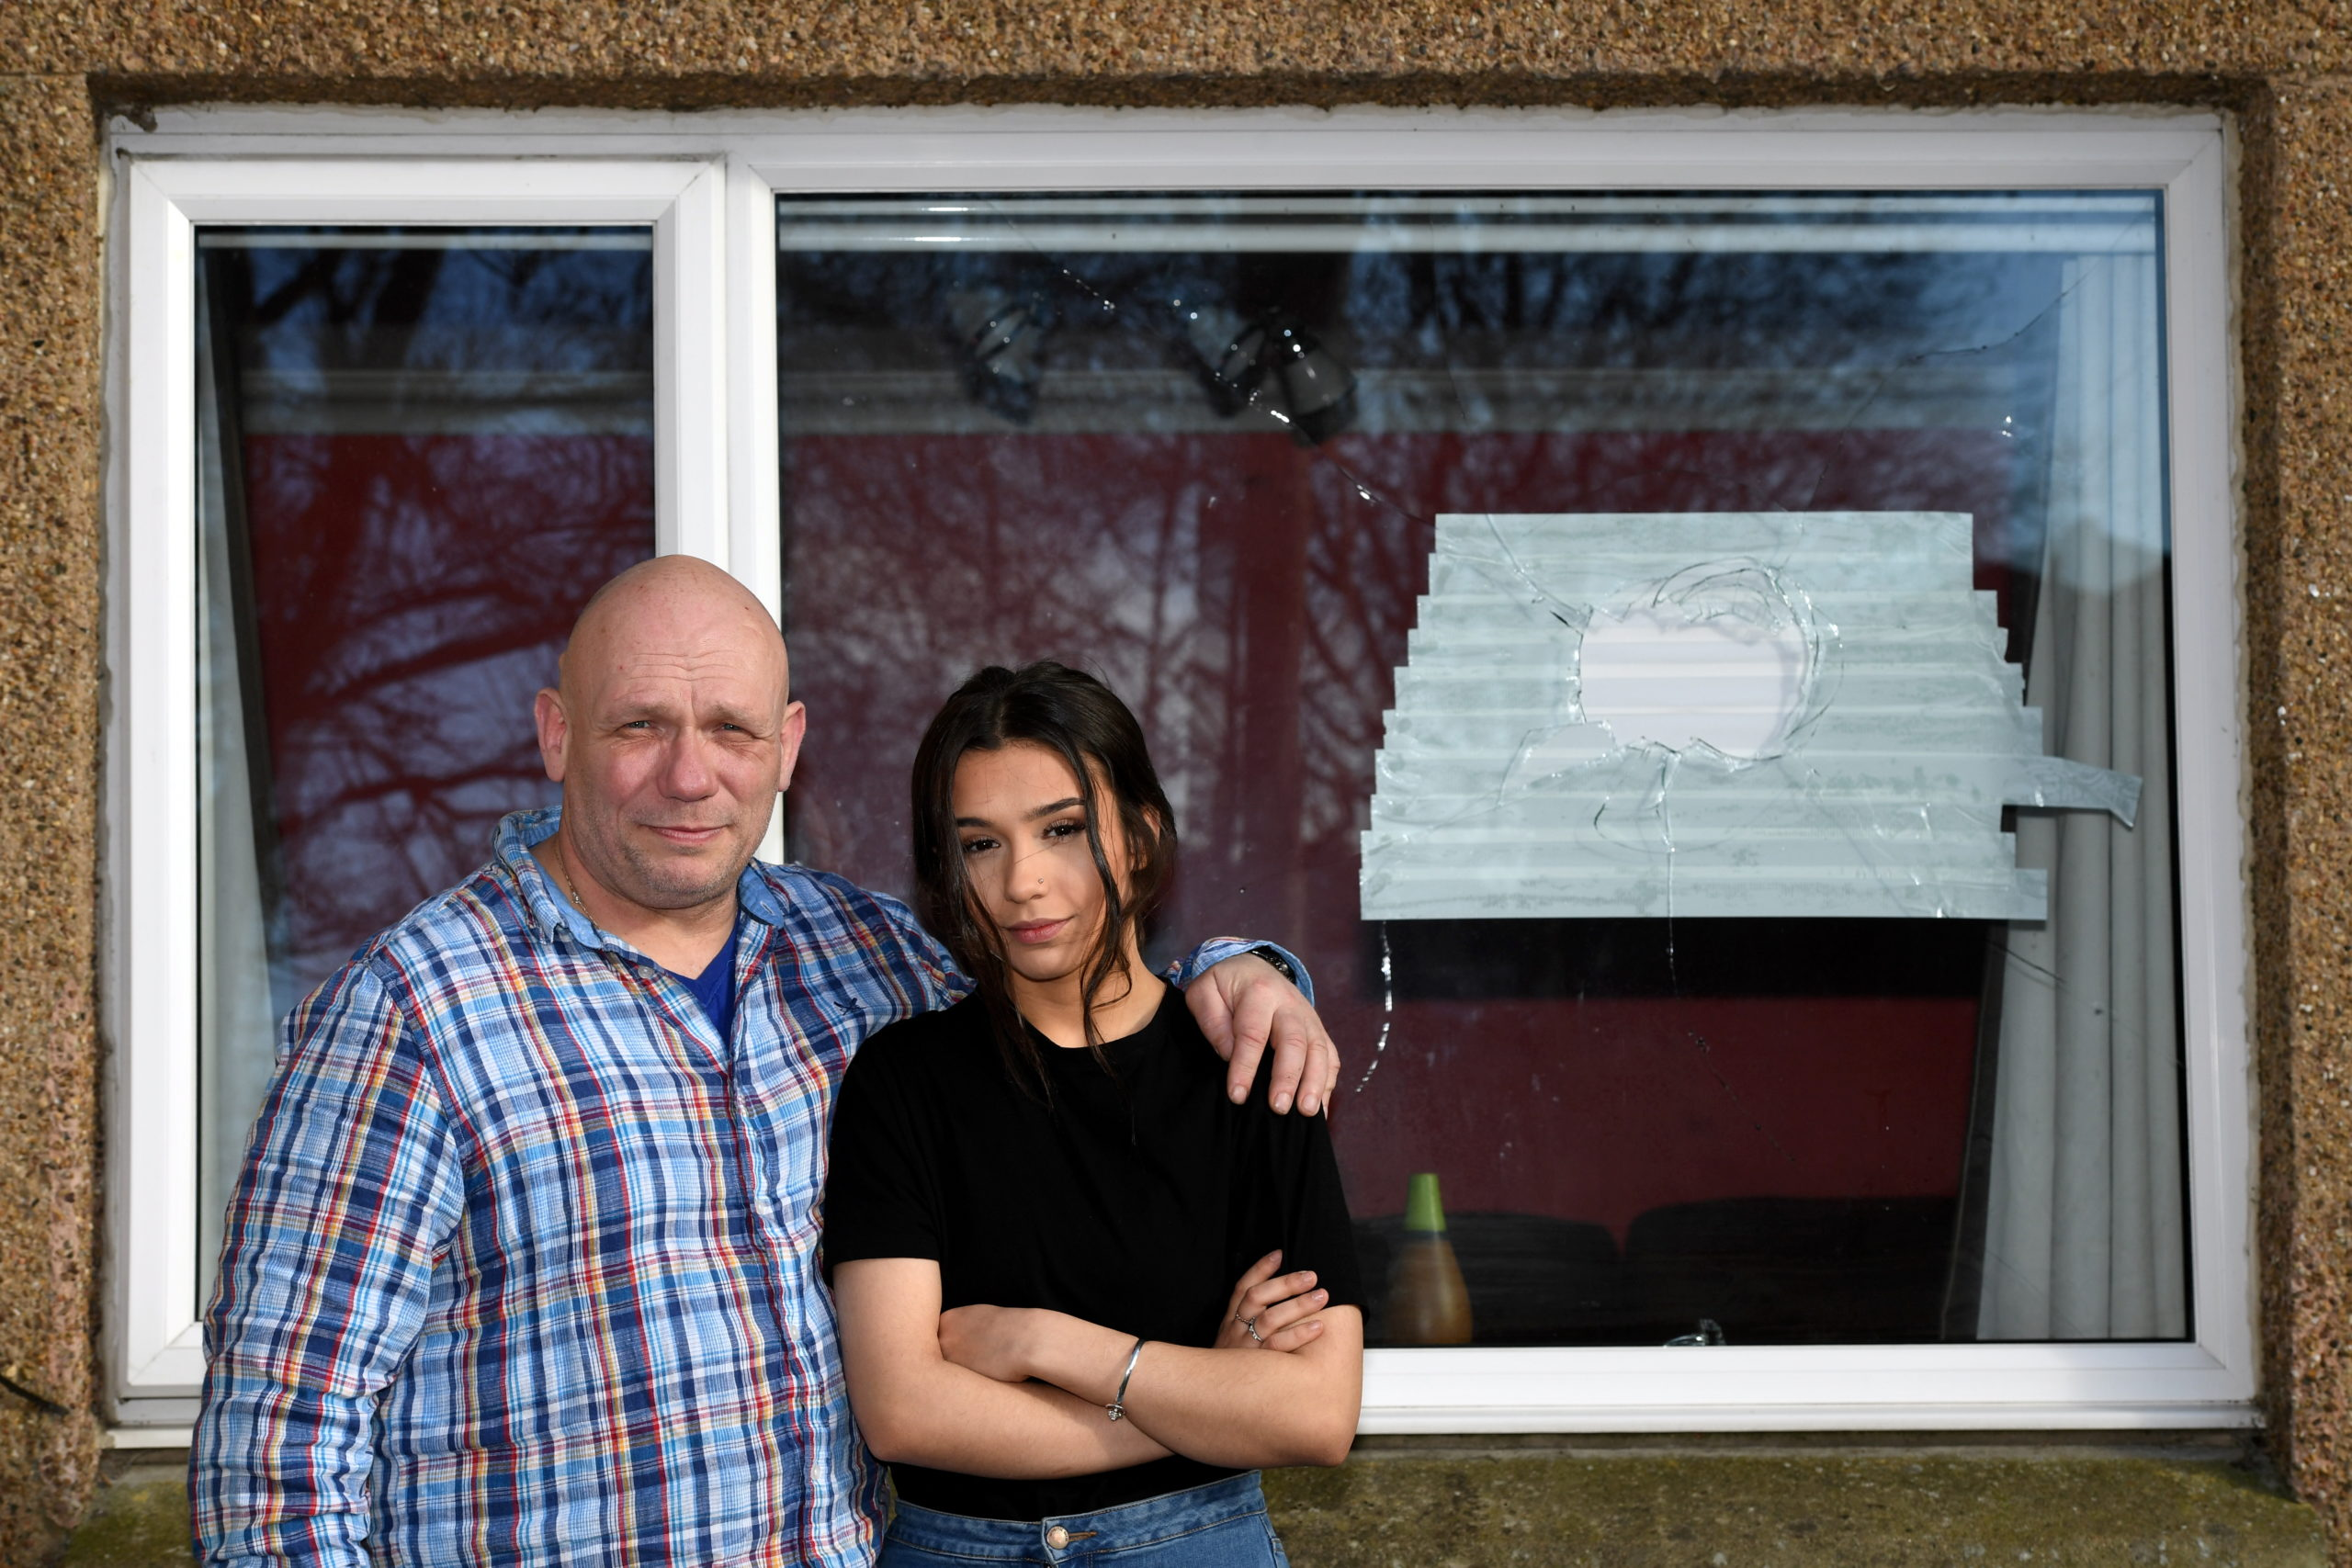 Andy Keay with his daughter Alicia. A brick was thrown through their window this week